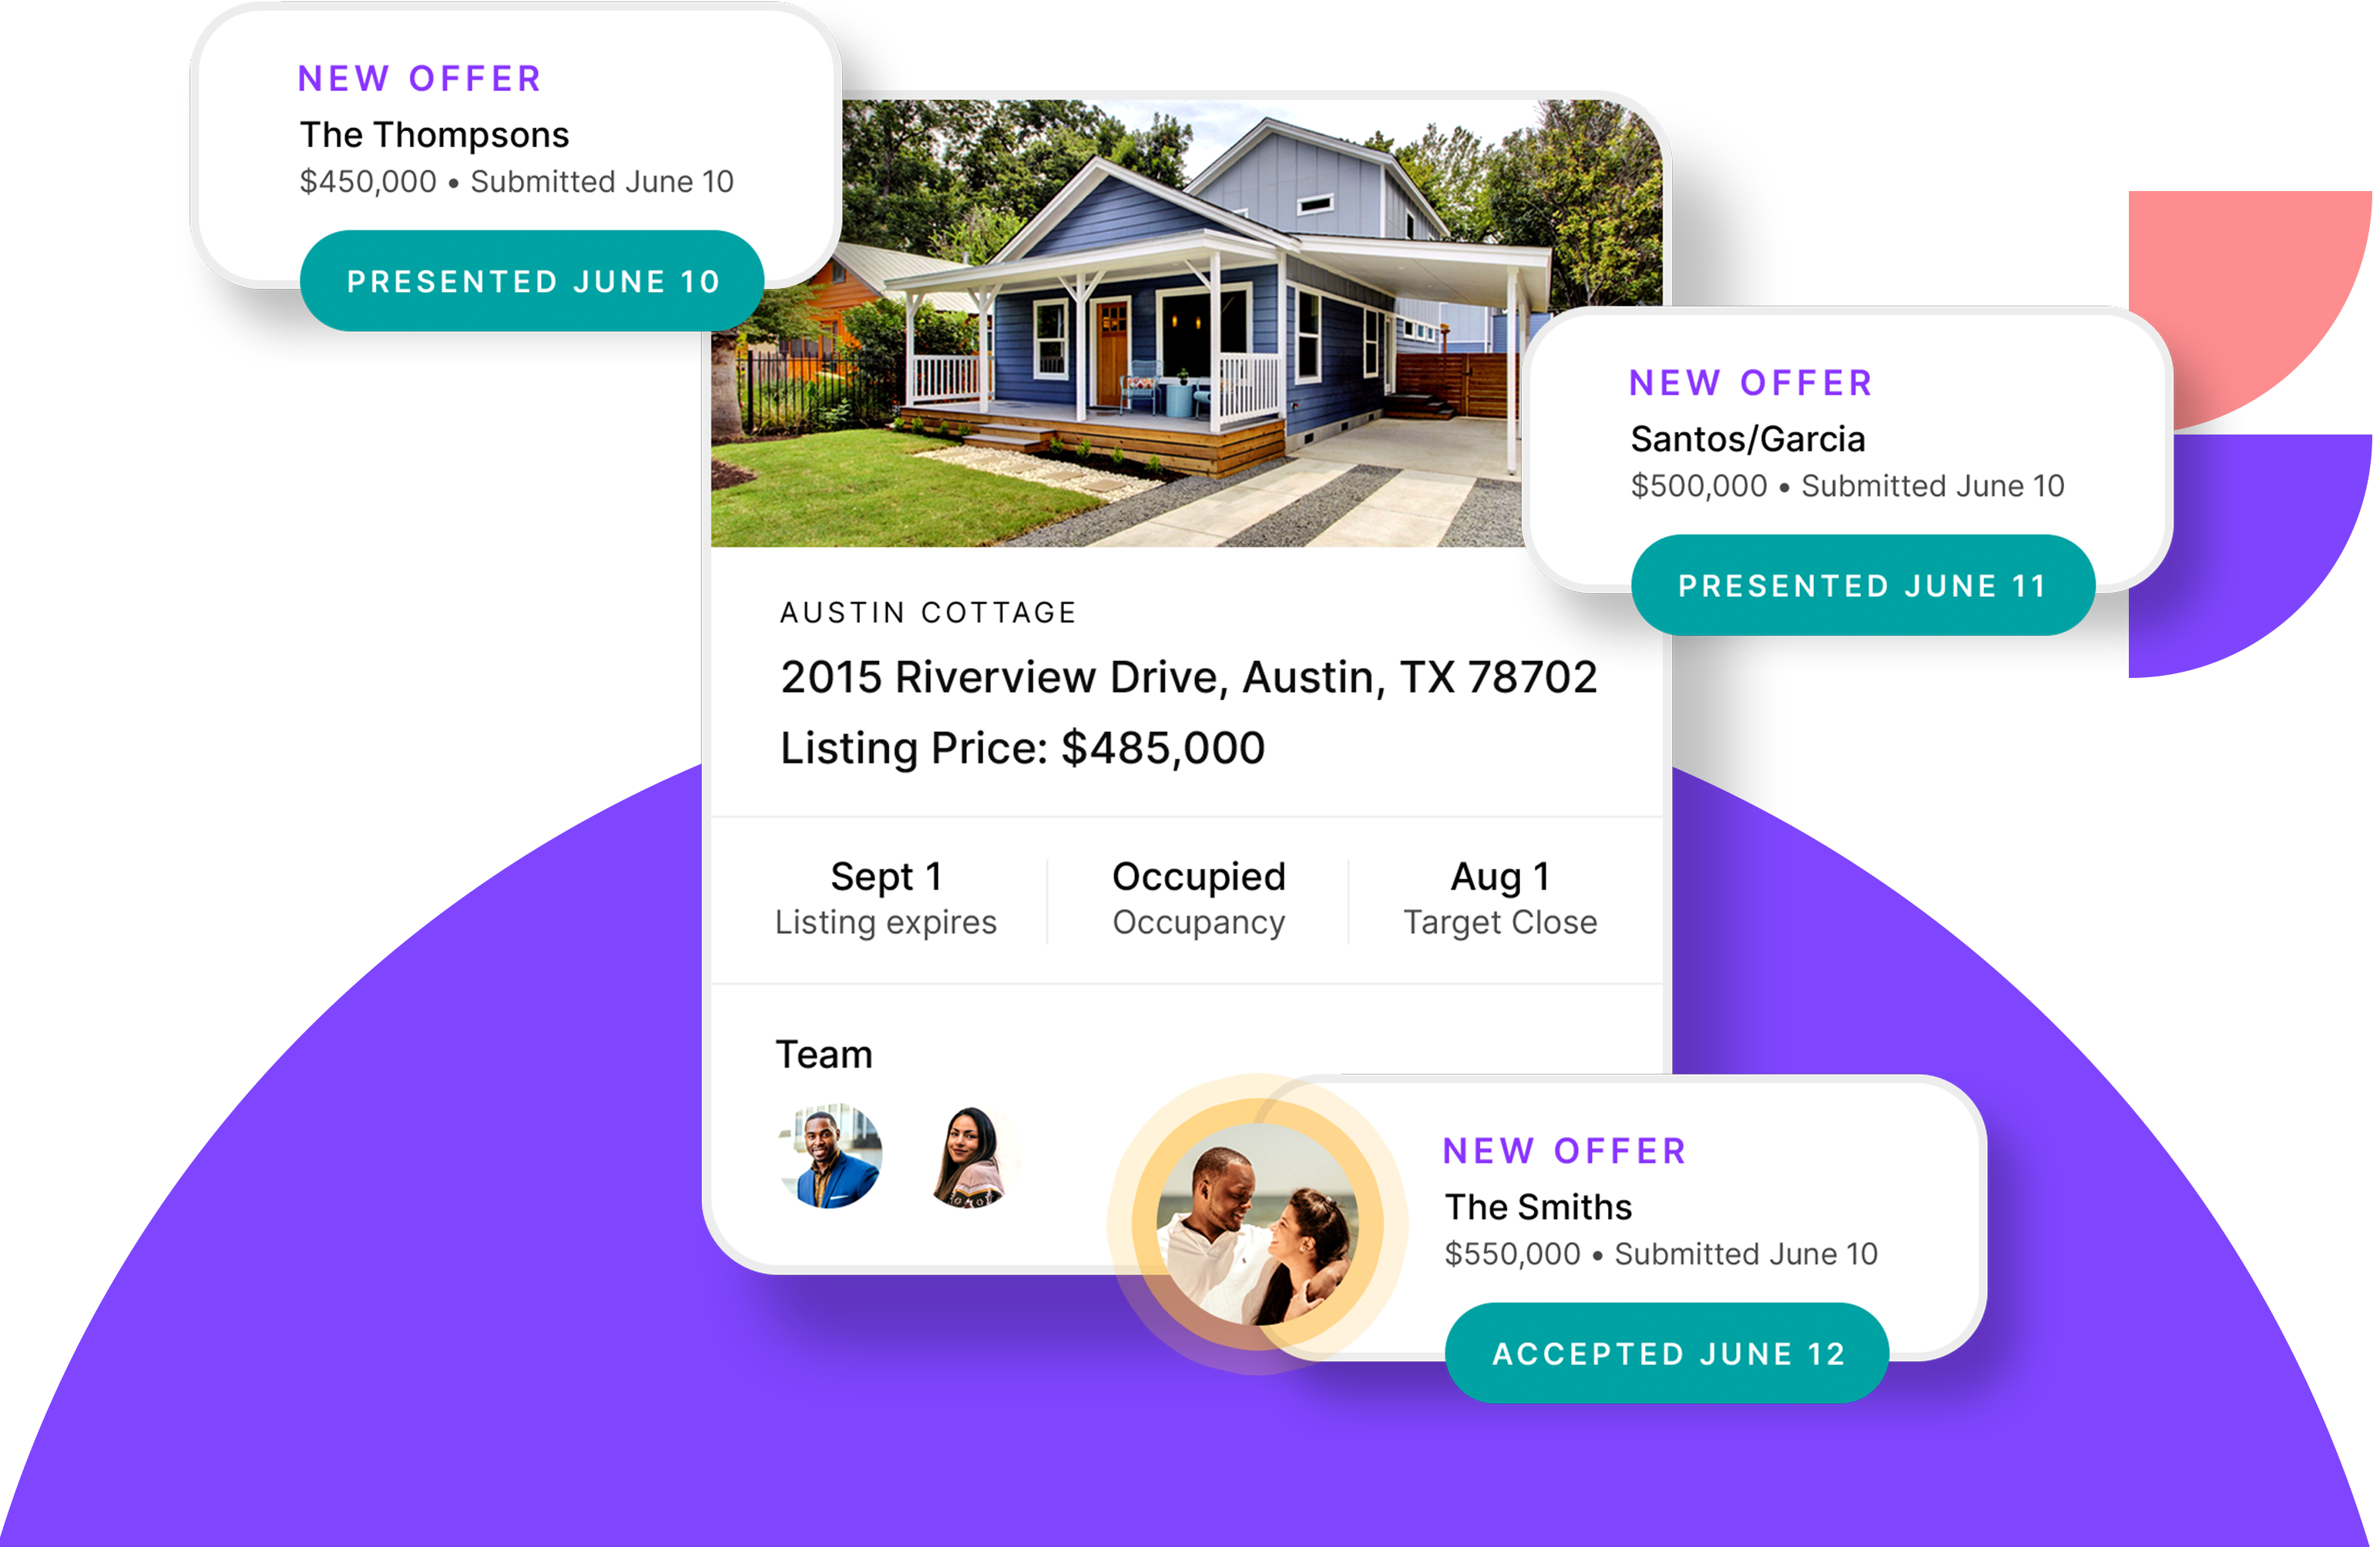 Product example of a listing receiving new offers.